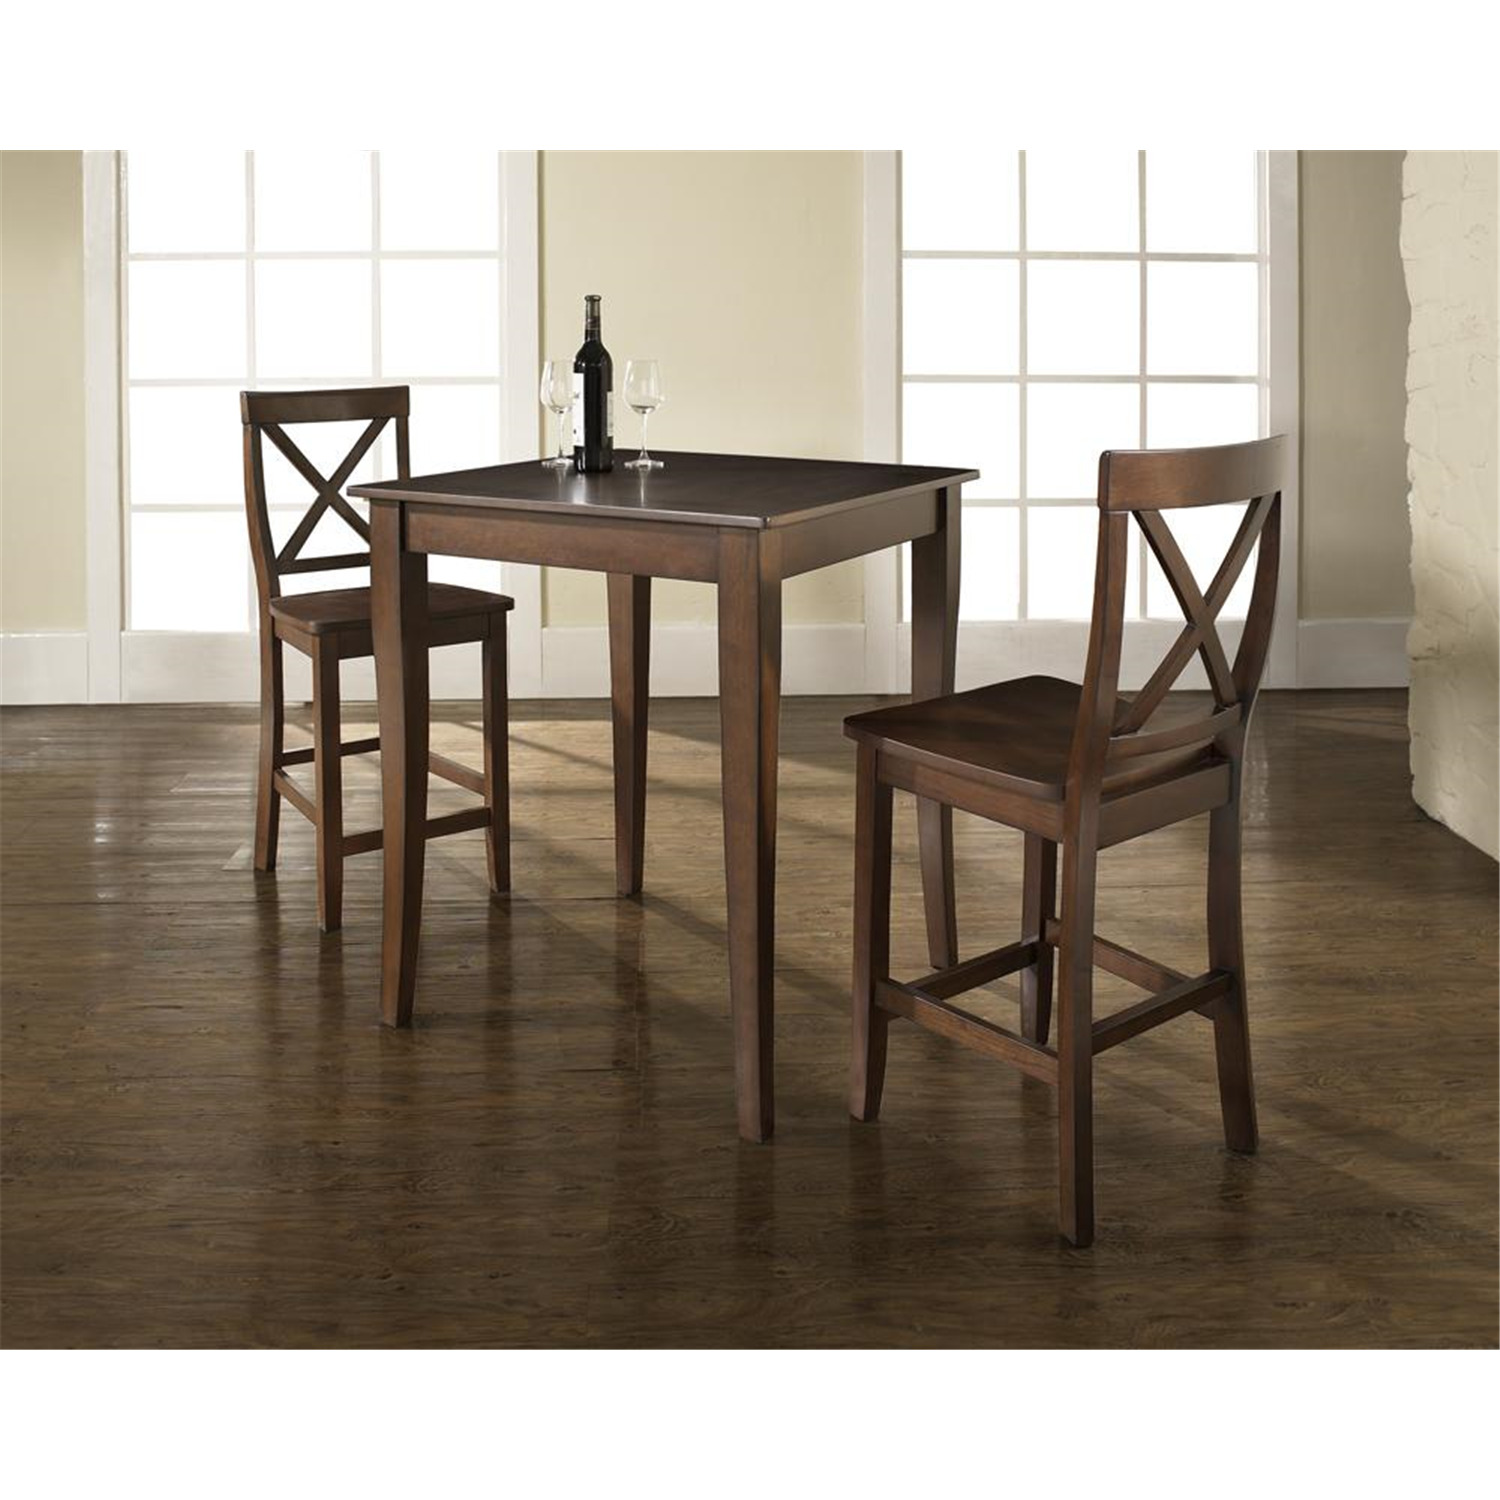 Crosley 3 Piece Pub Dining Set With Cabriole Leg And X